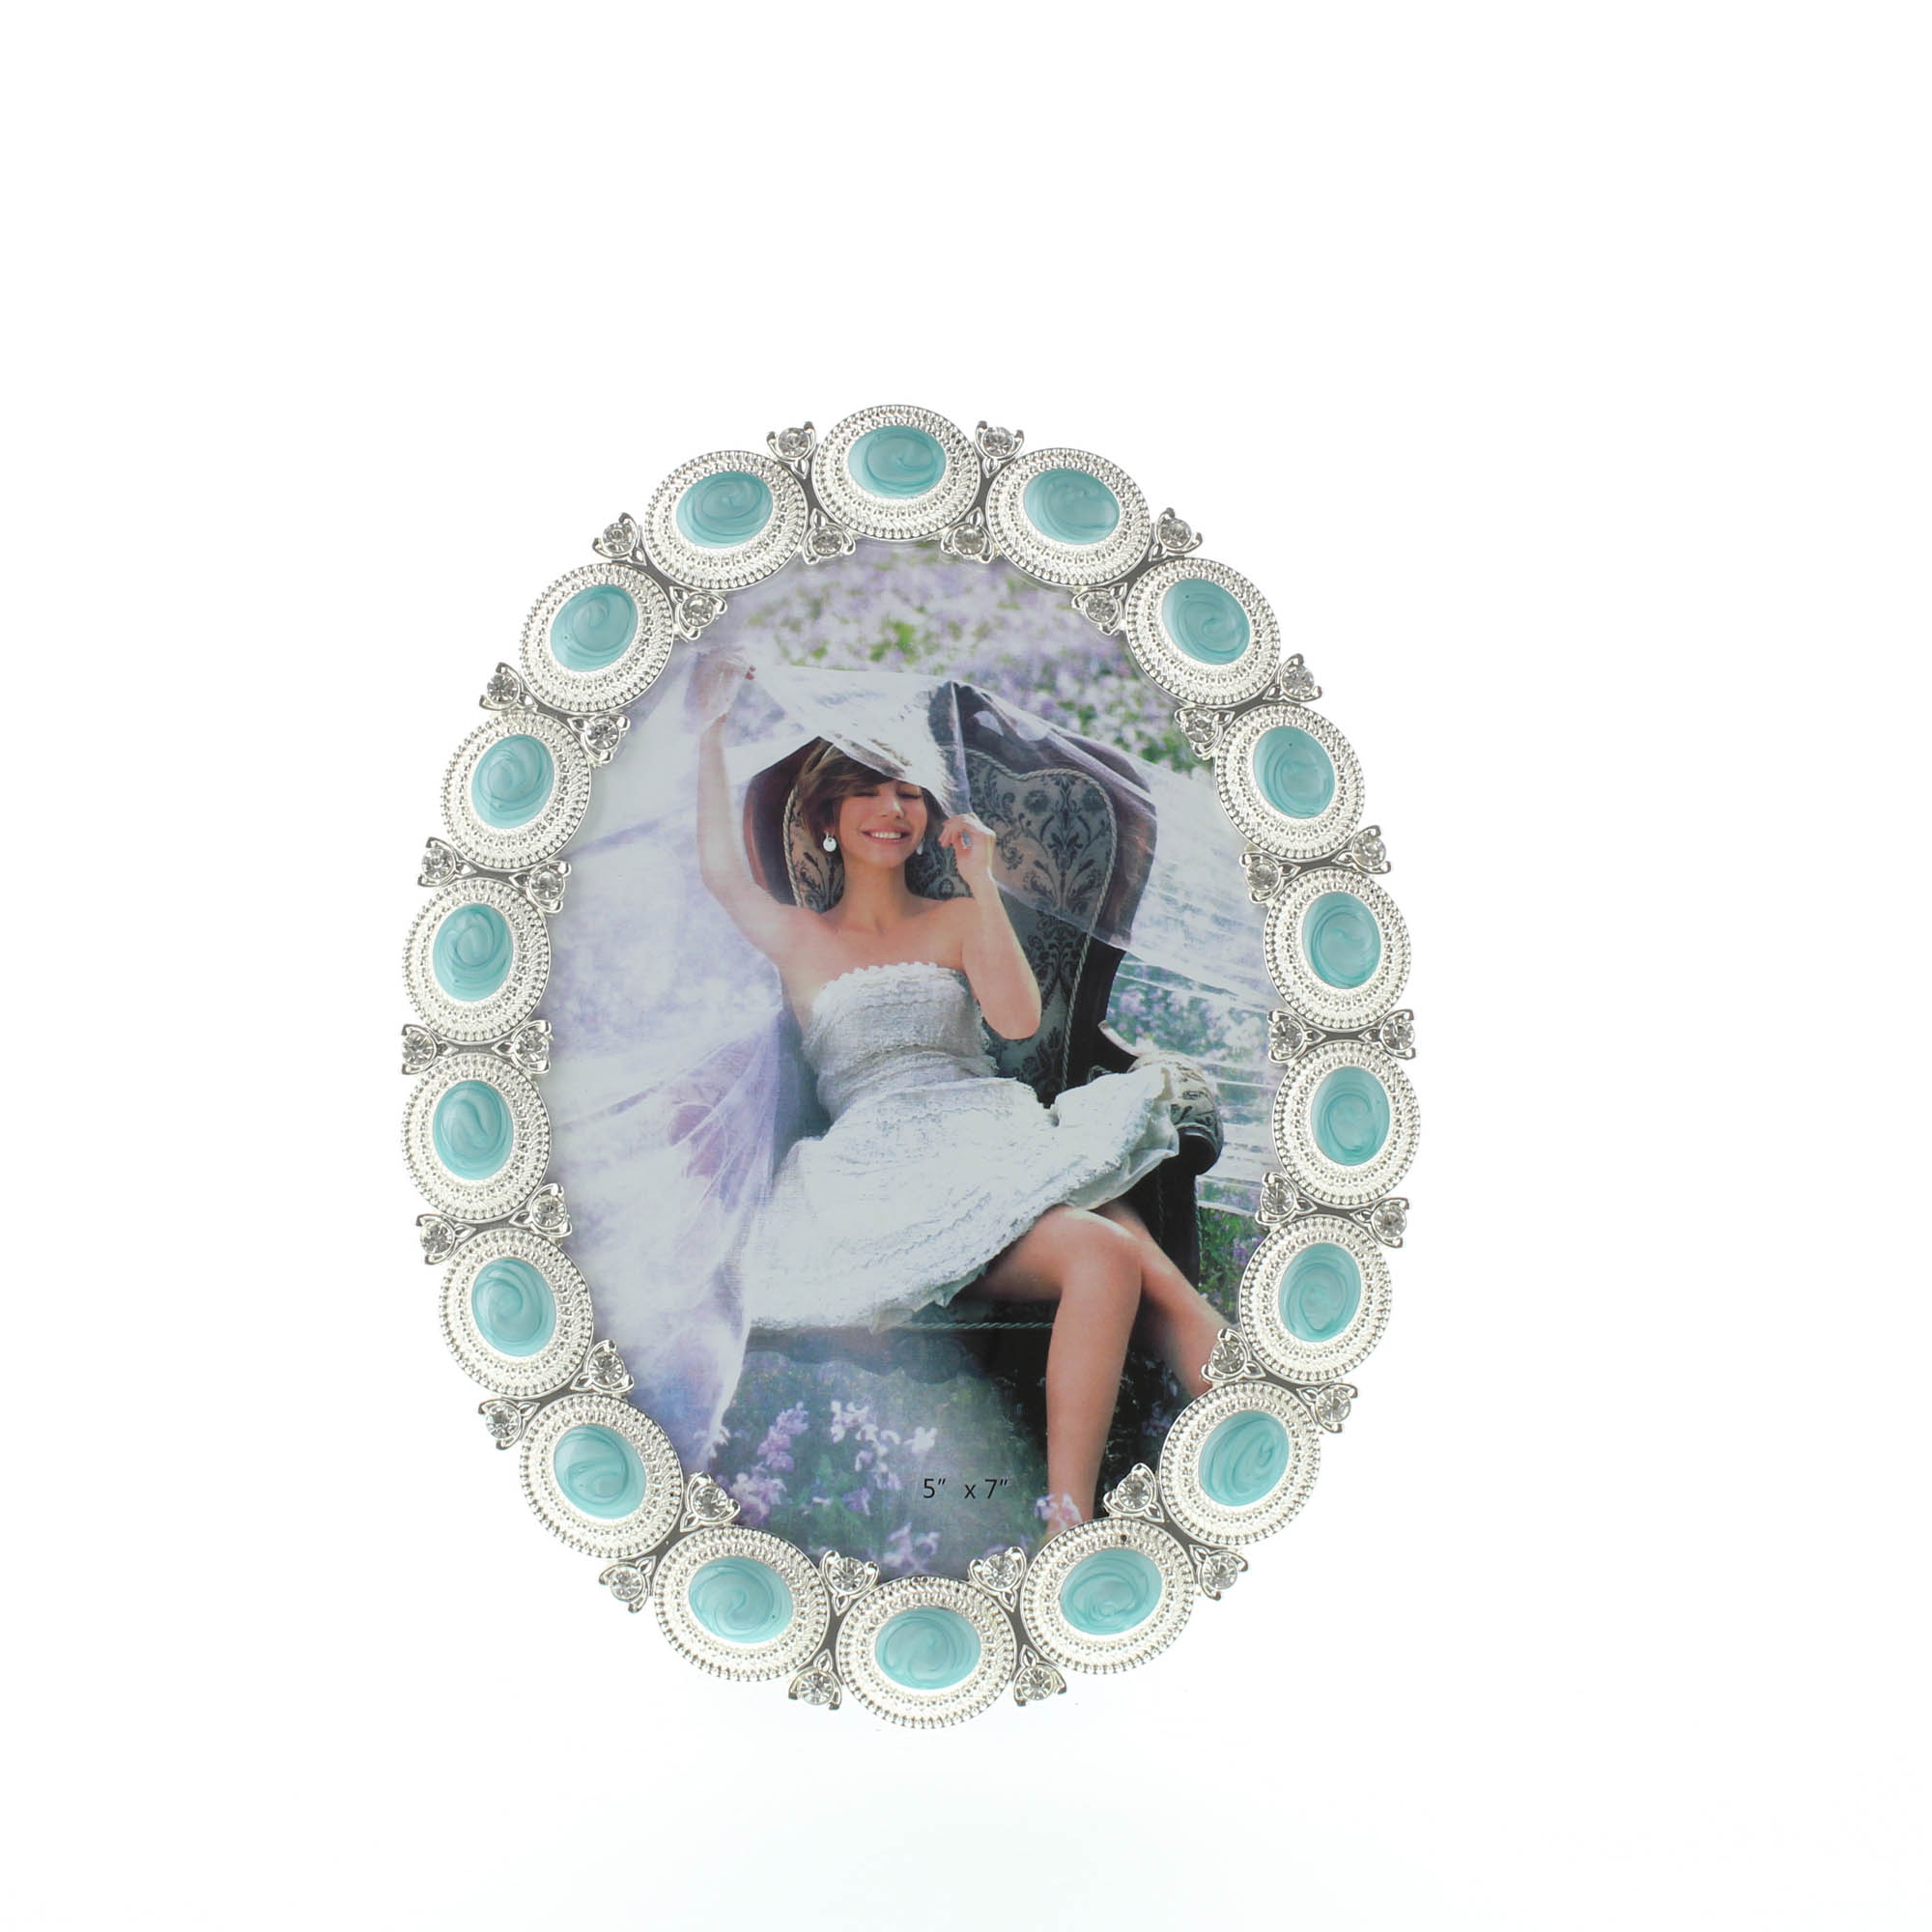 SEA CABOCHON PHOTO FRAME 5 X 7 10016936